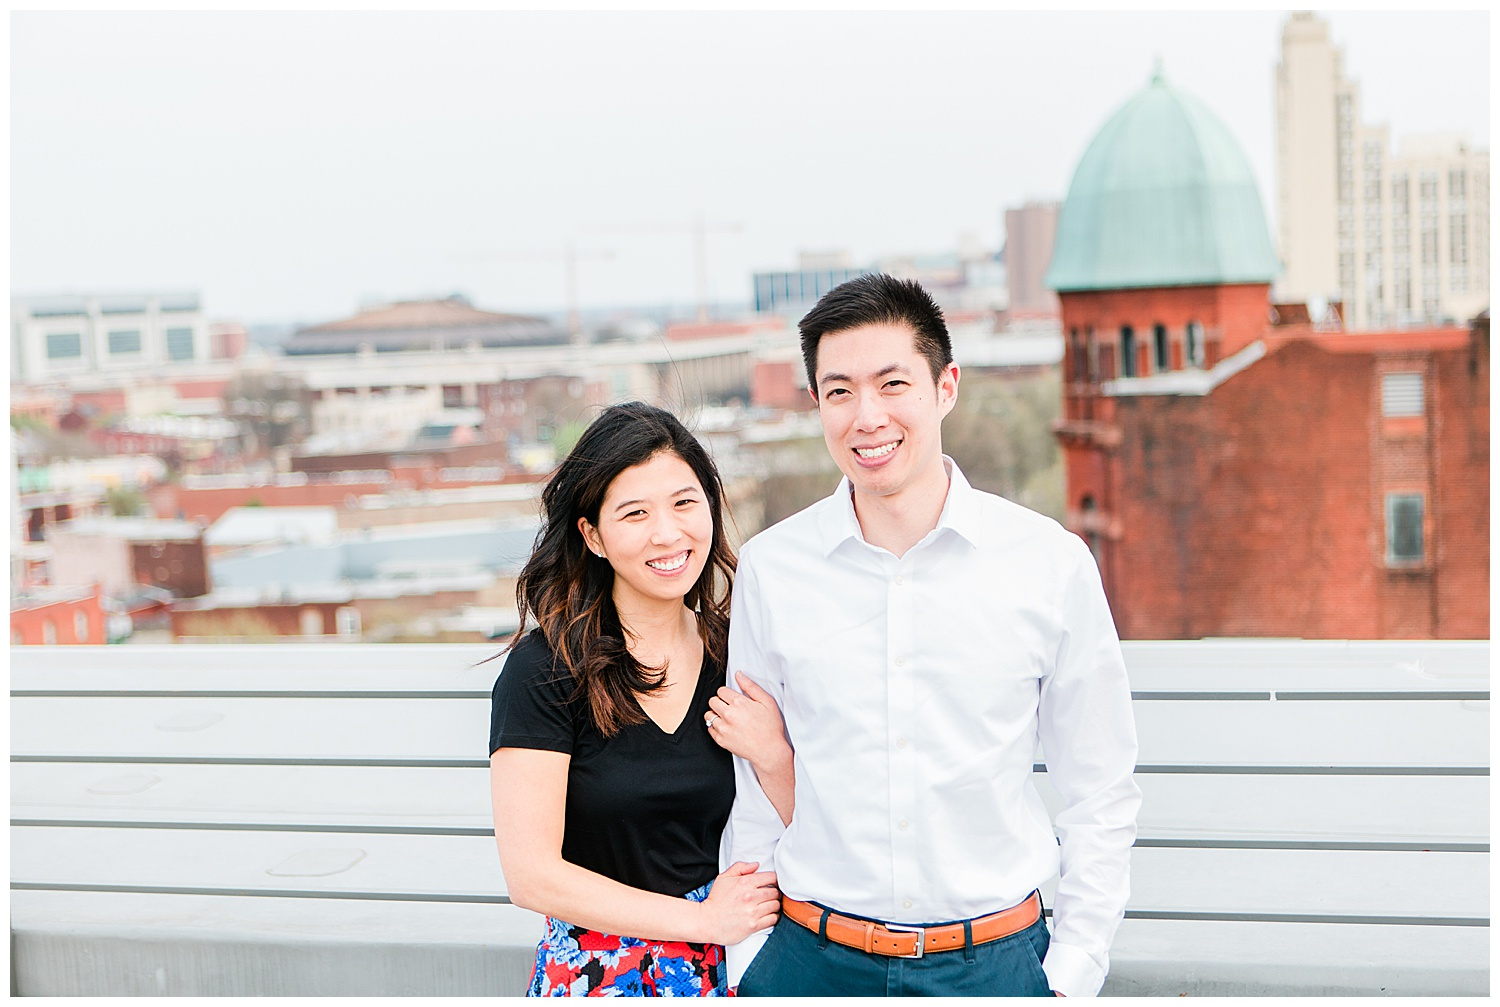 Quirk Hotel Rooftop Proposal - Virginia Wedding Photographer